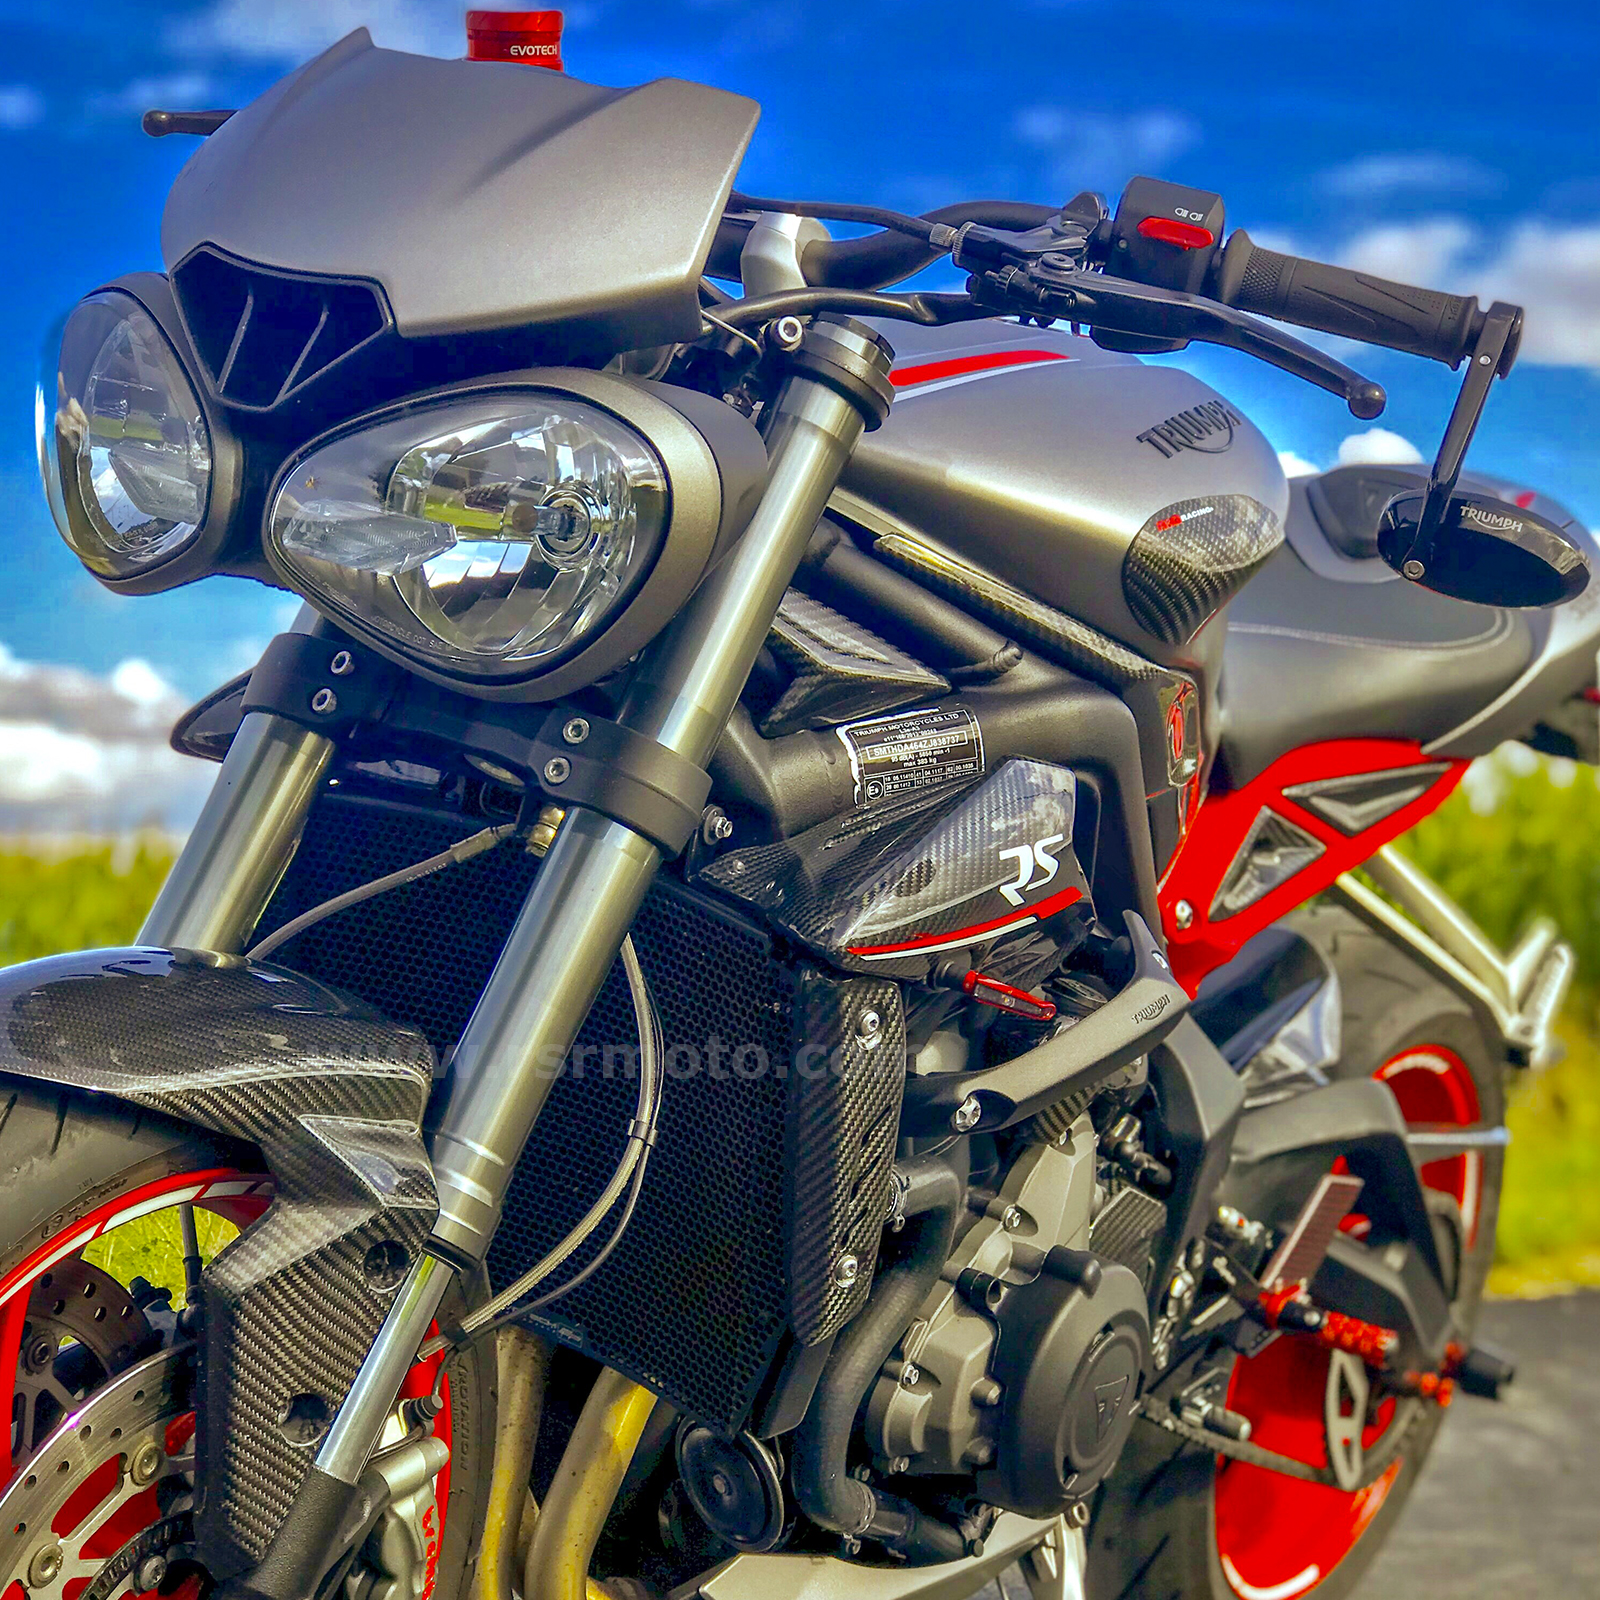 triumph-street-triple-carbon-fibre-parts.jpg